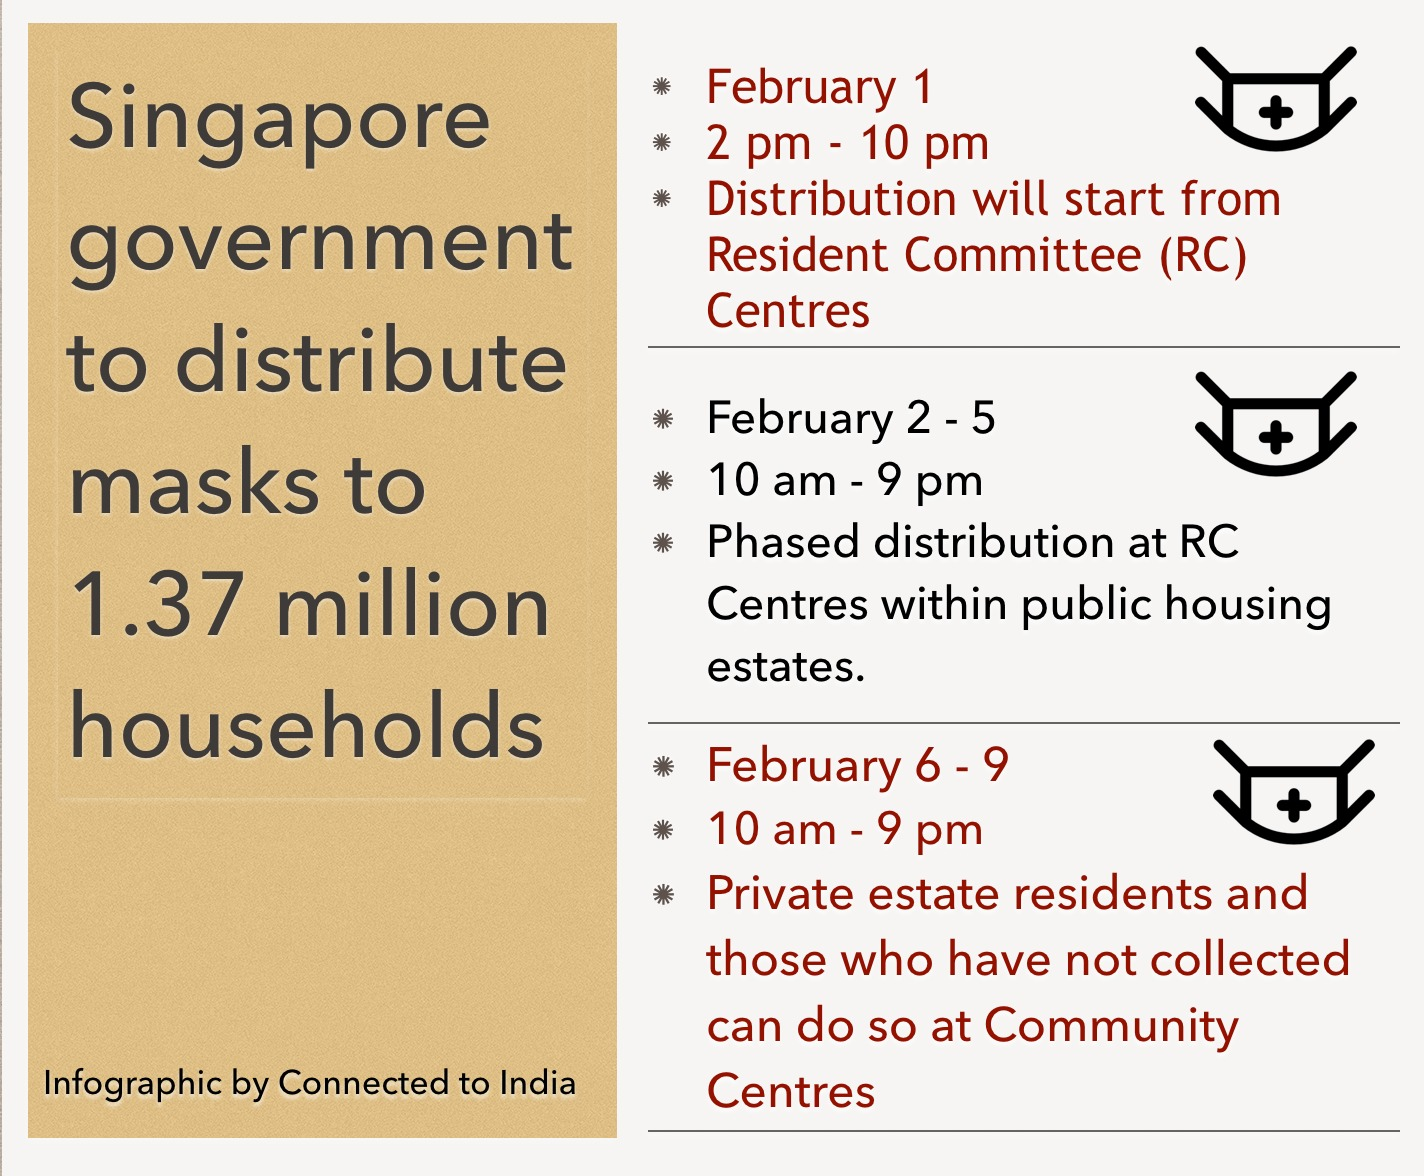 The Singapore government has asked residents to keep checking to stay updated on the progress of distribution. Here's Connected to India's concise infographic to help you do so. Infographic Credit: Connected to India